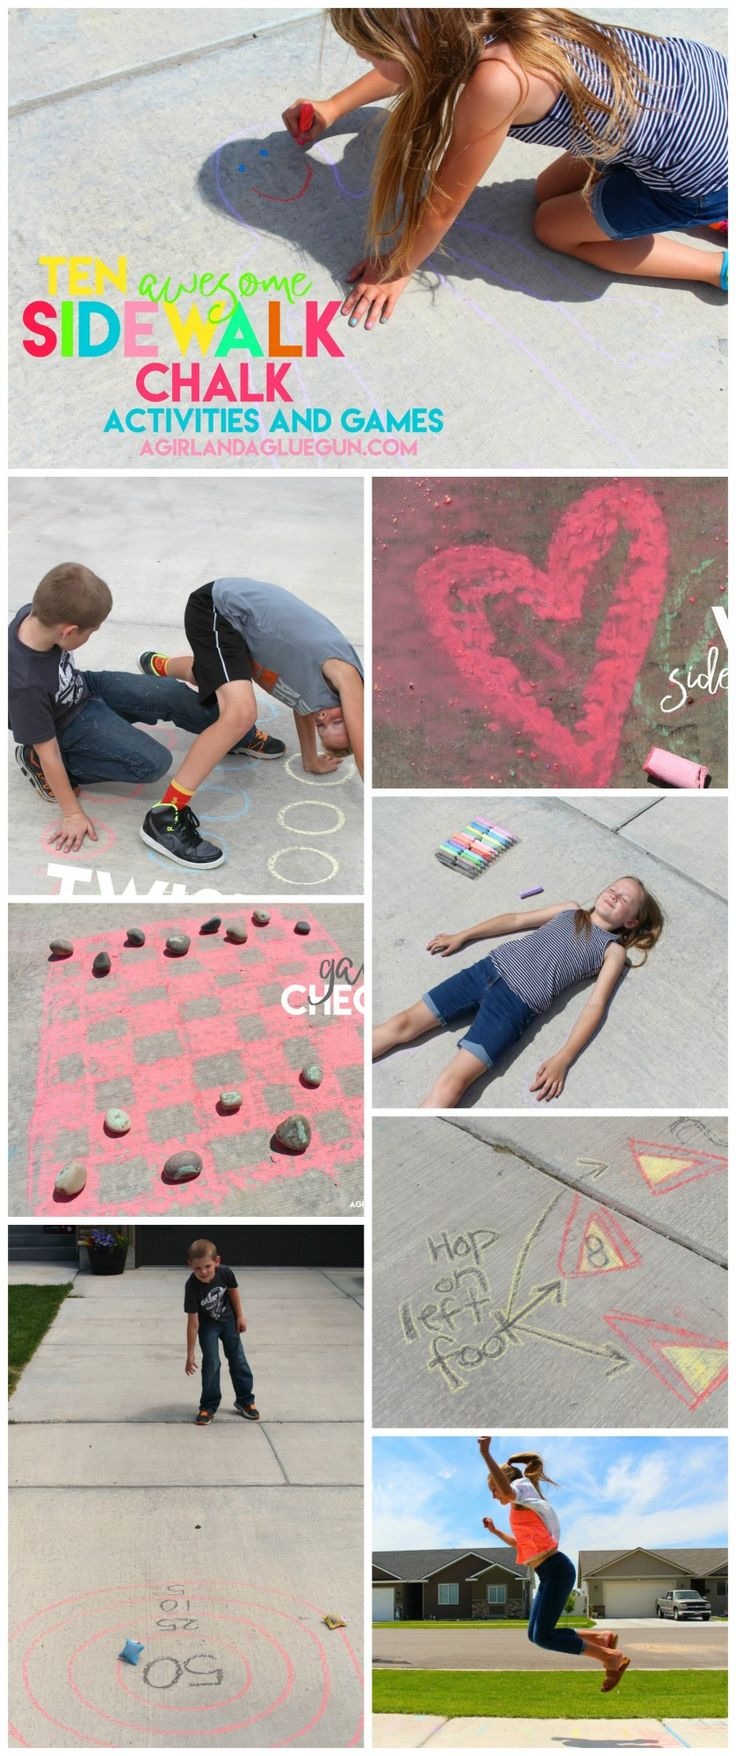 10 amazingly fun things to do this summer with sidewalk chalk--keep those kids busy and entertained